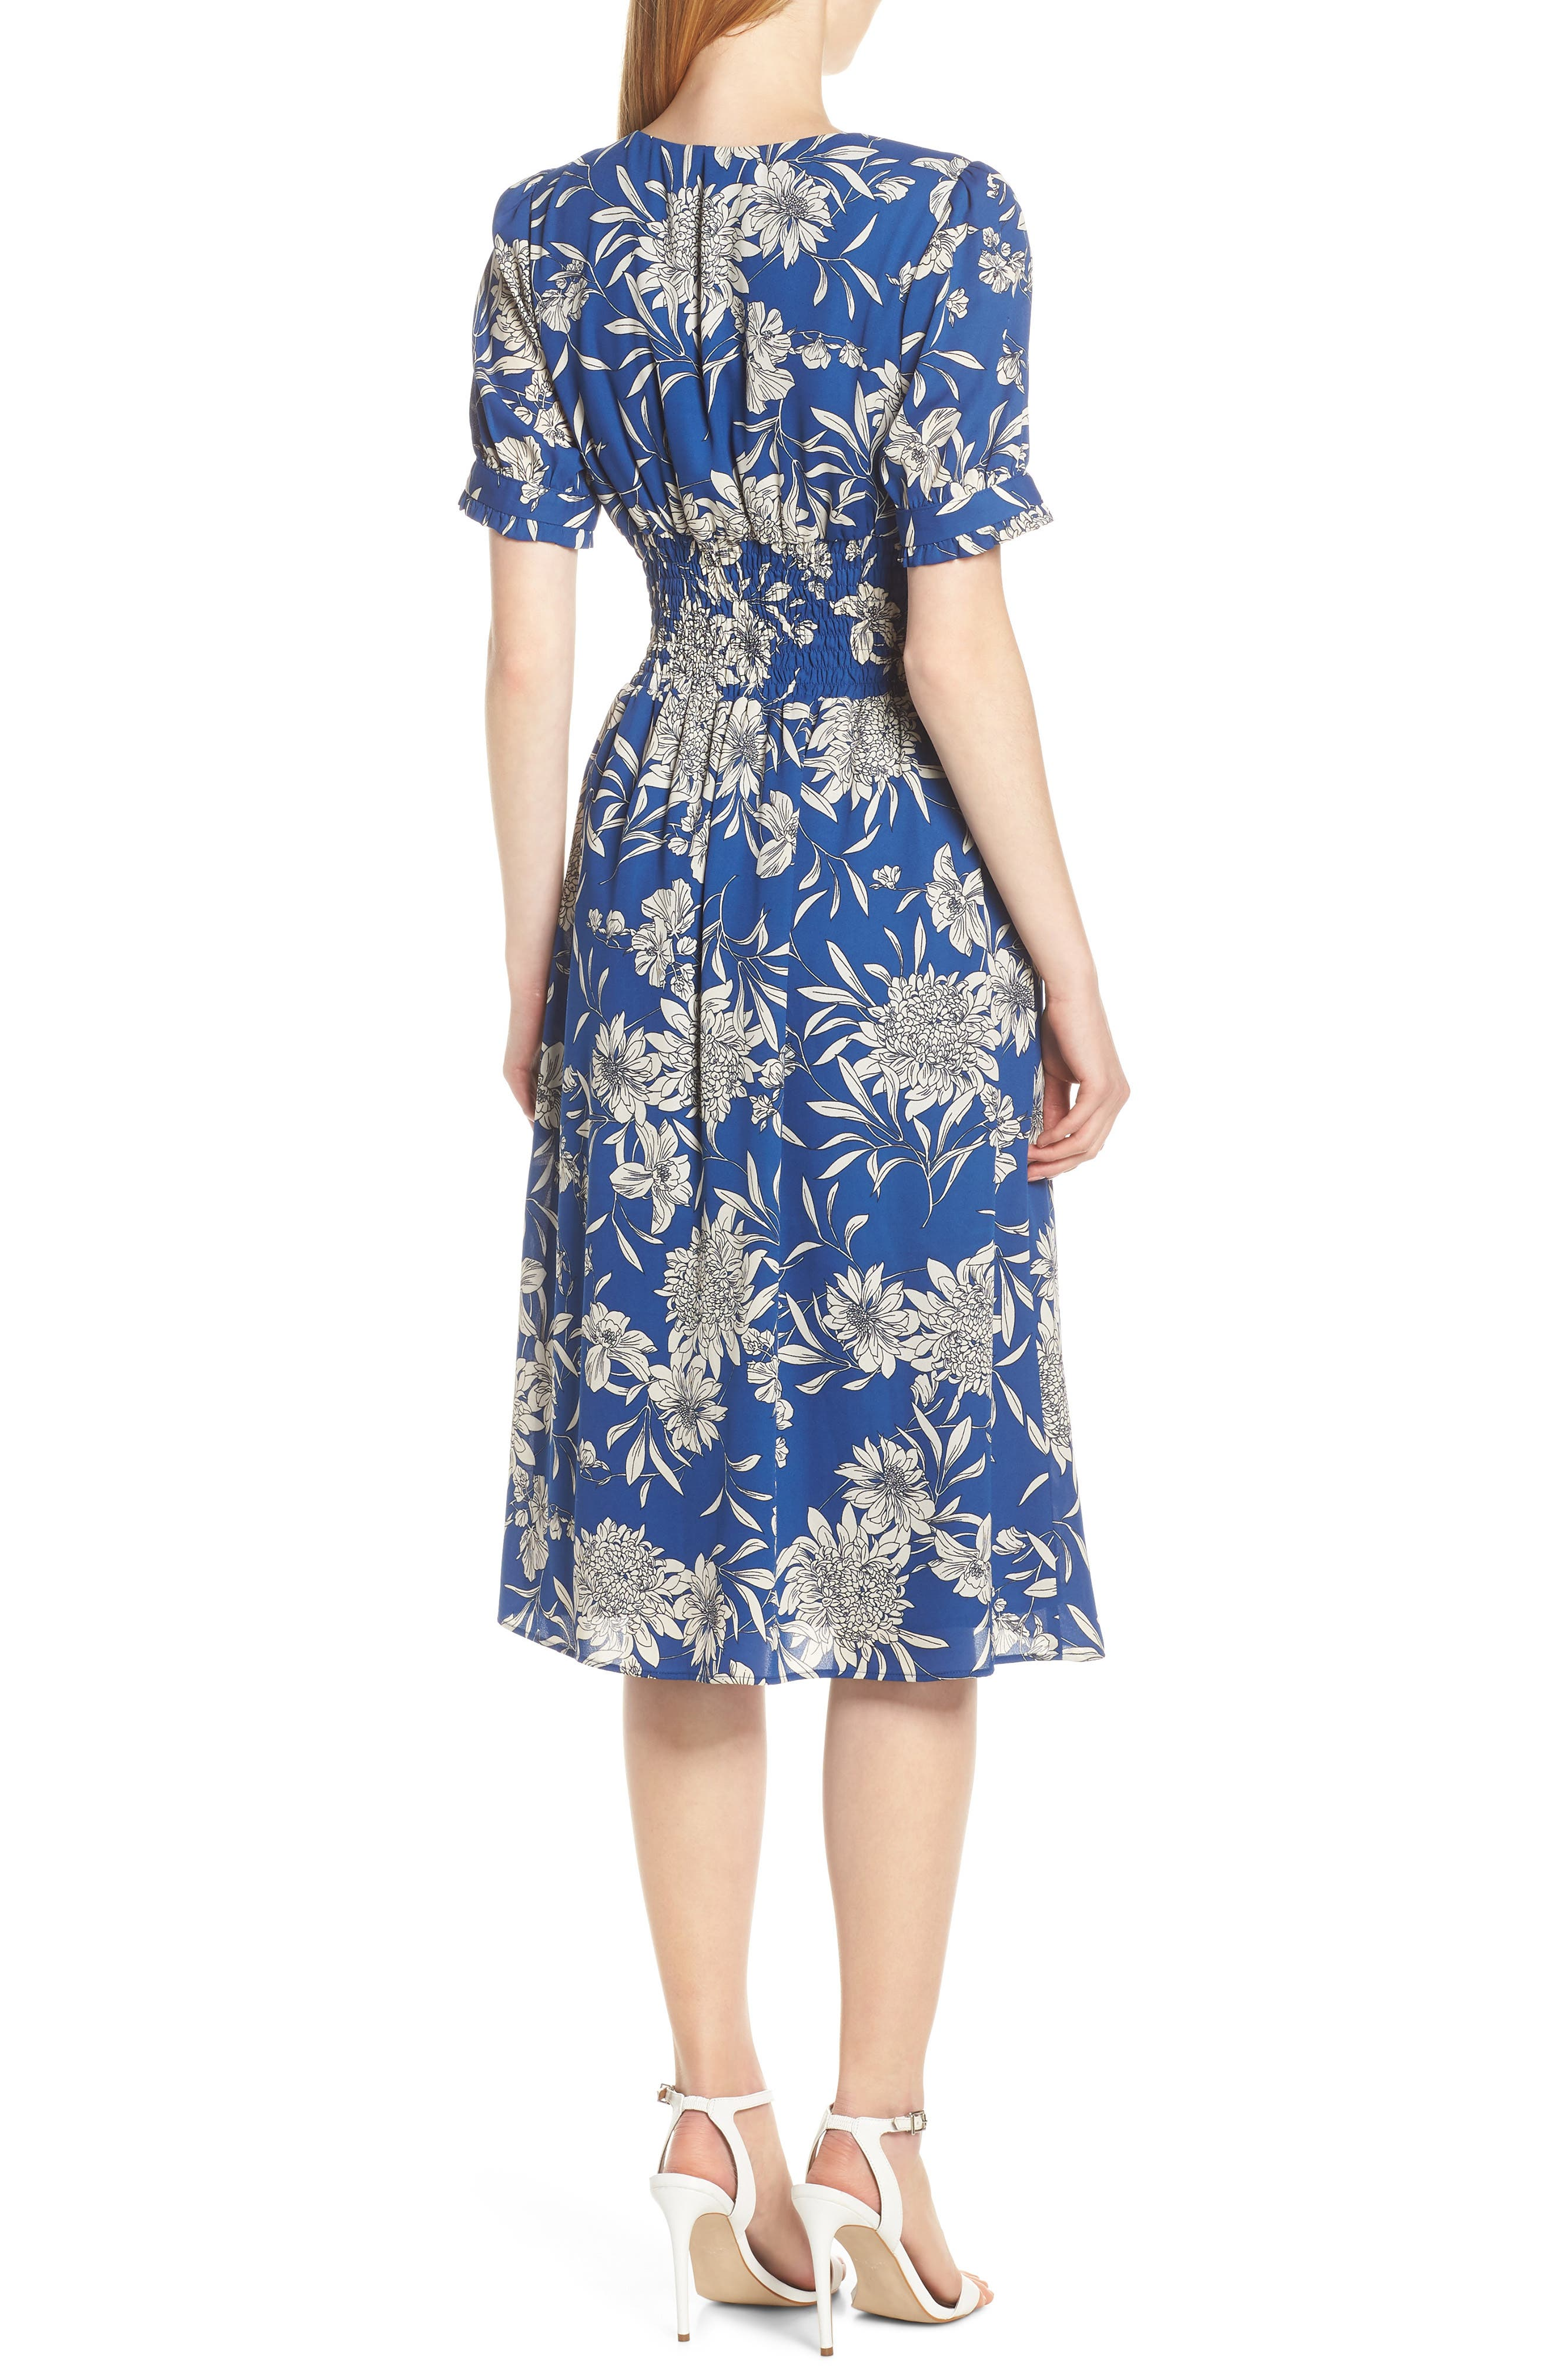 19 COOPER, Shirred Waist Midi Dress, Alternate thumbnail 2, color, BLUE/ WHITE